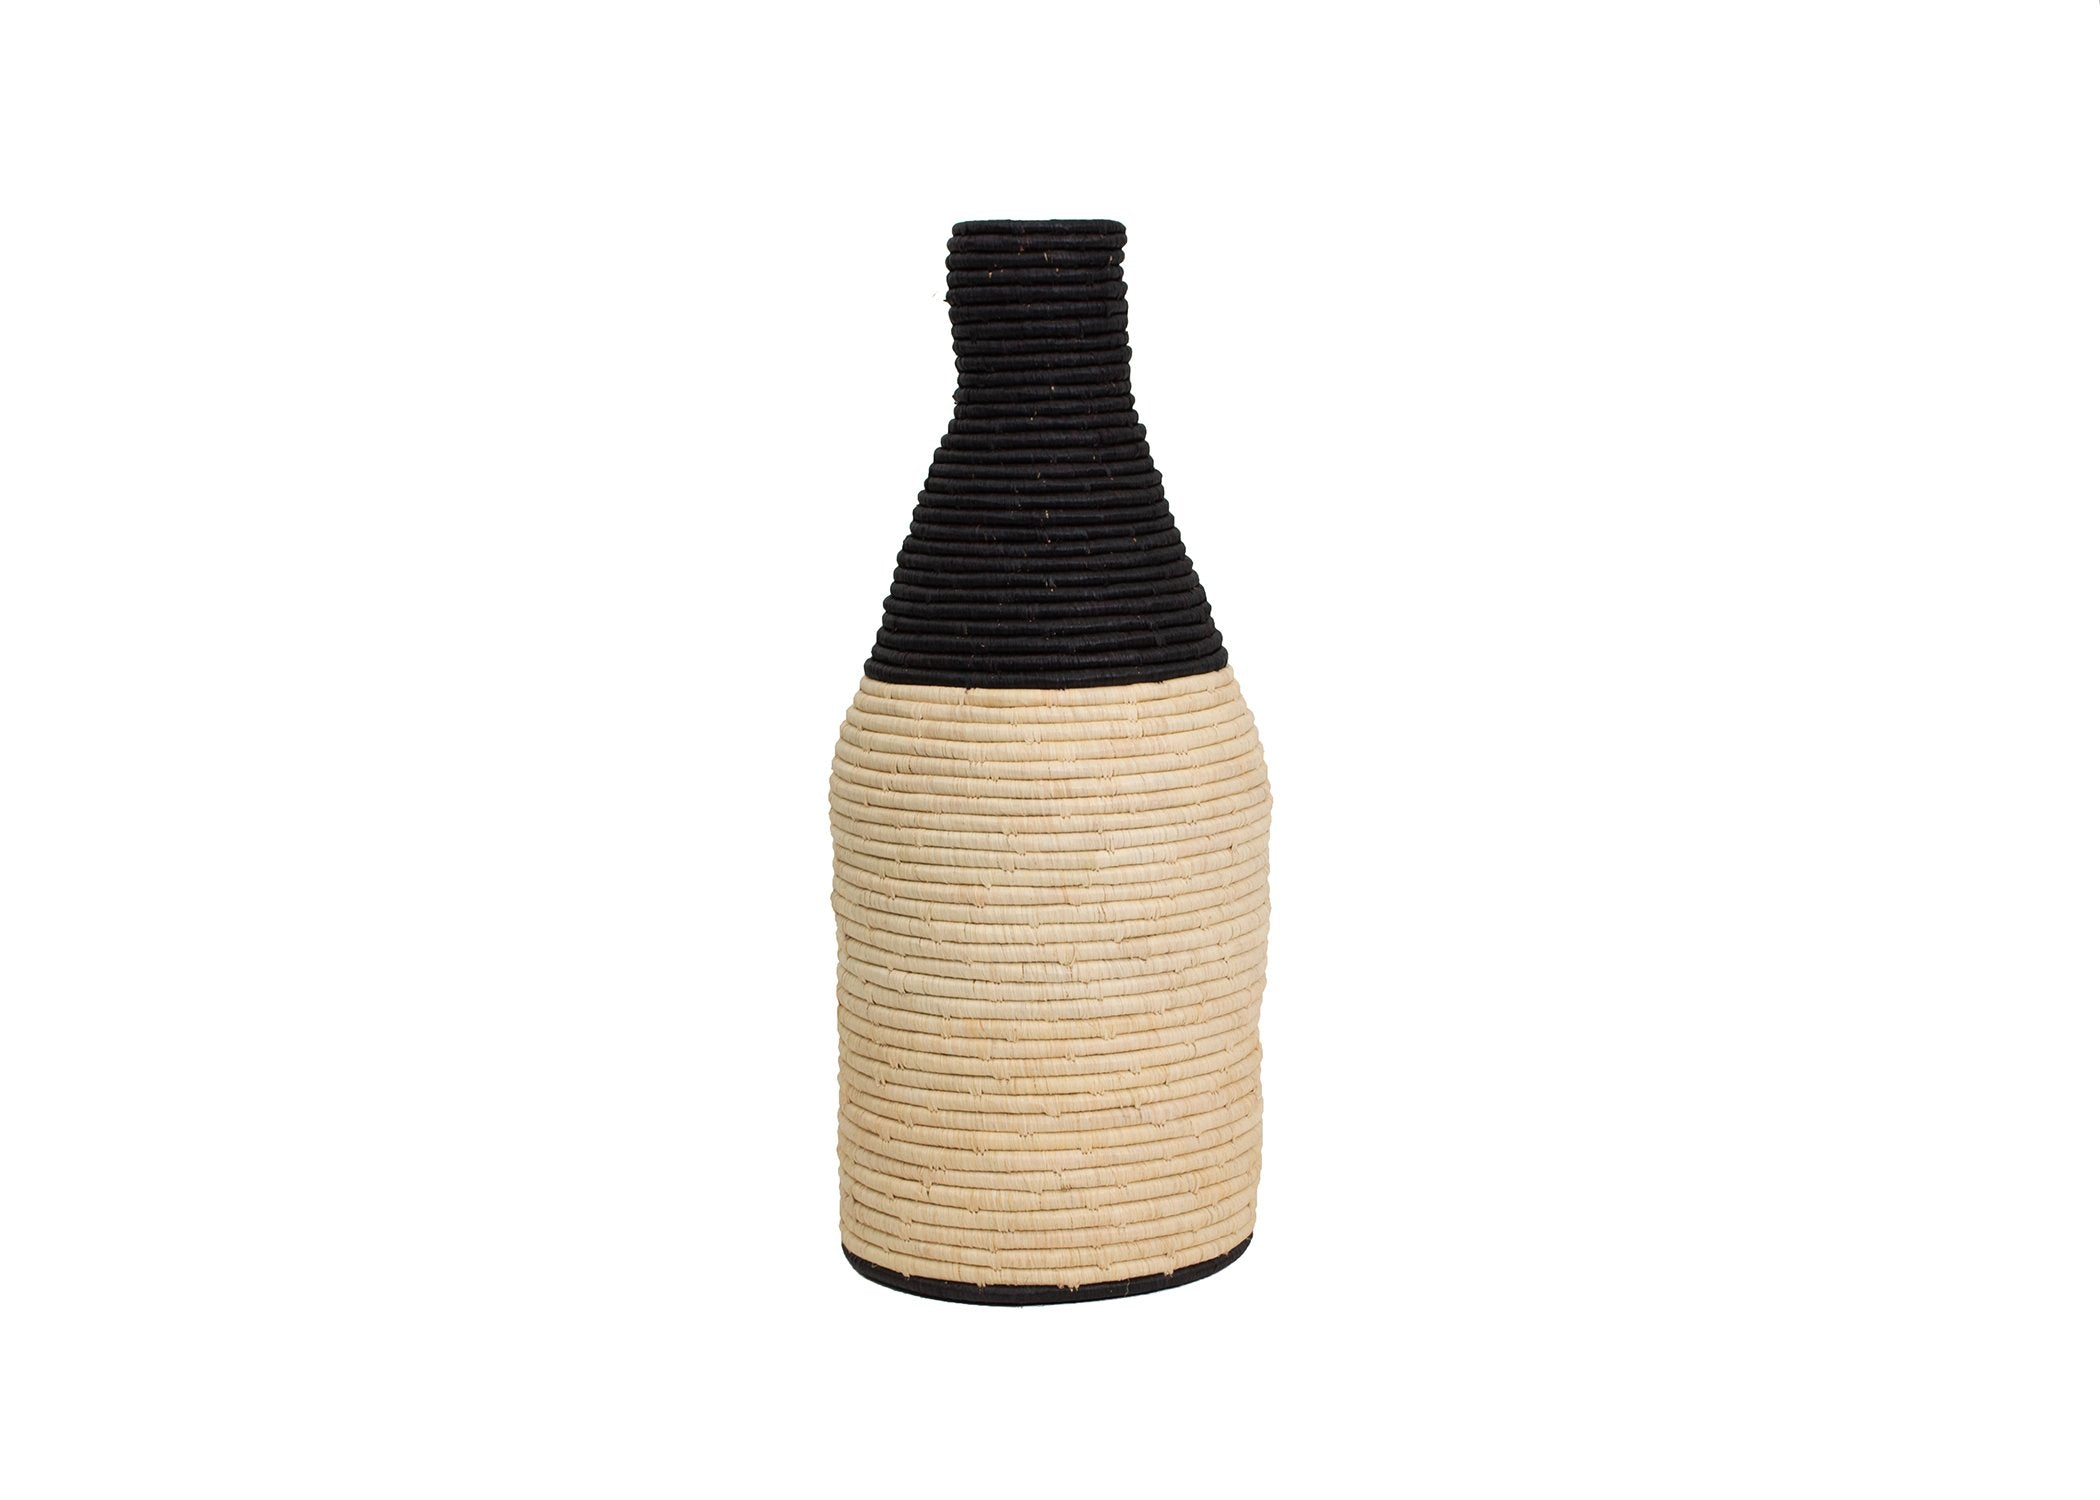 Black Malia Large Floor Vase - KAZI